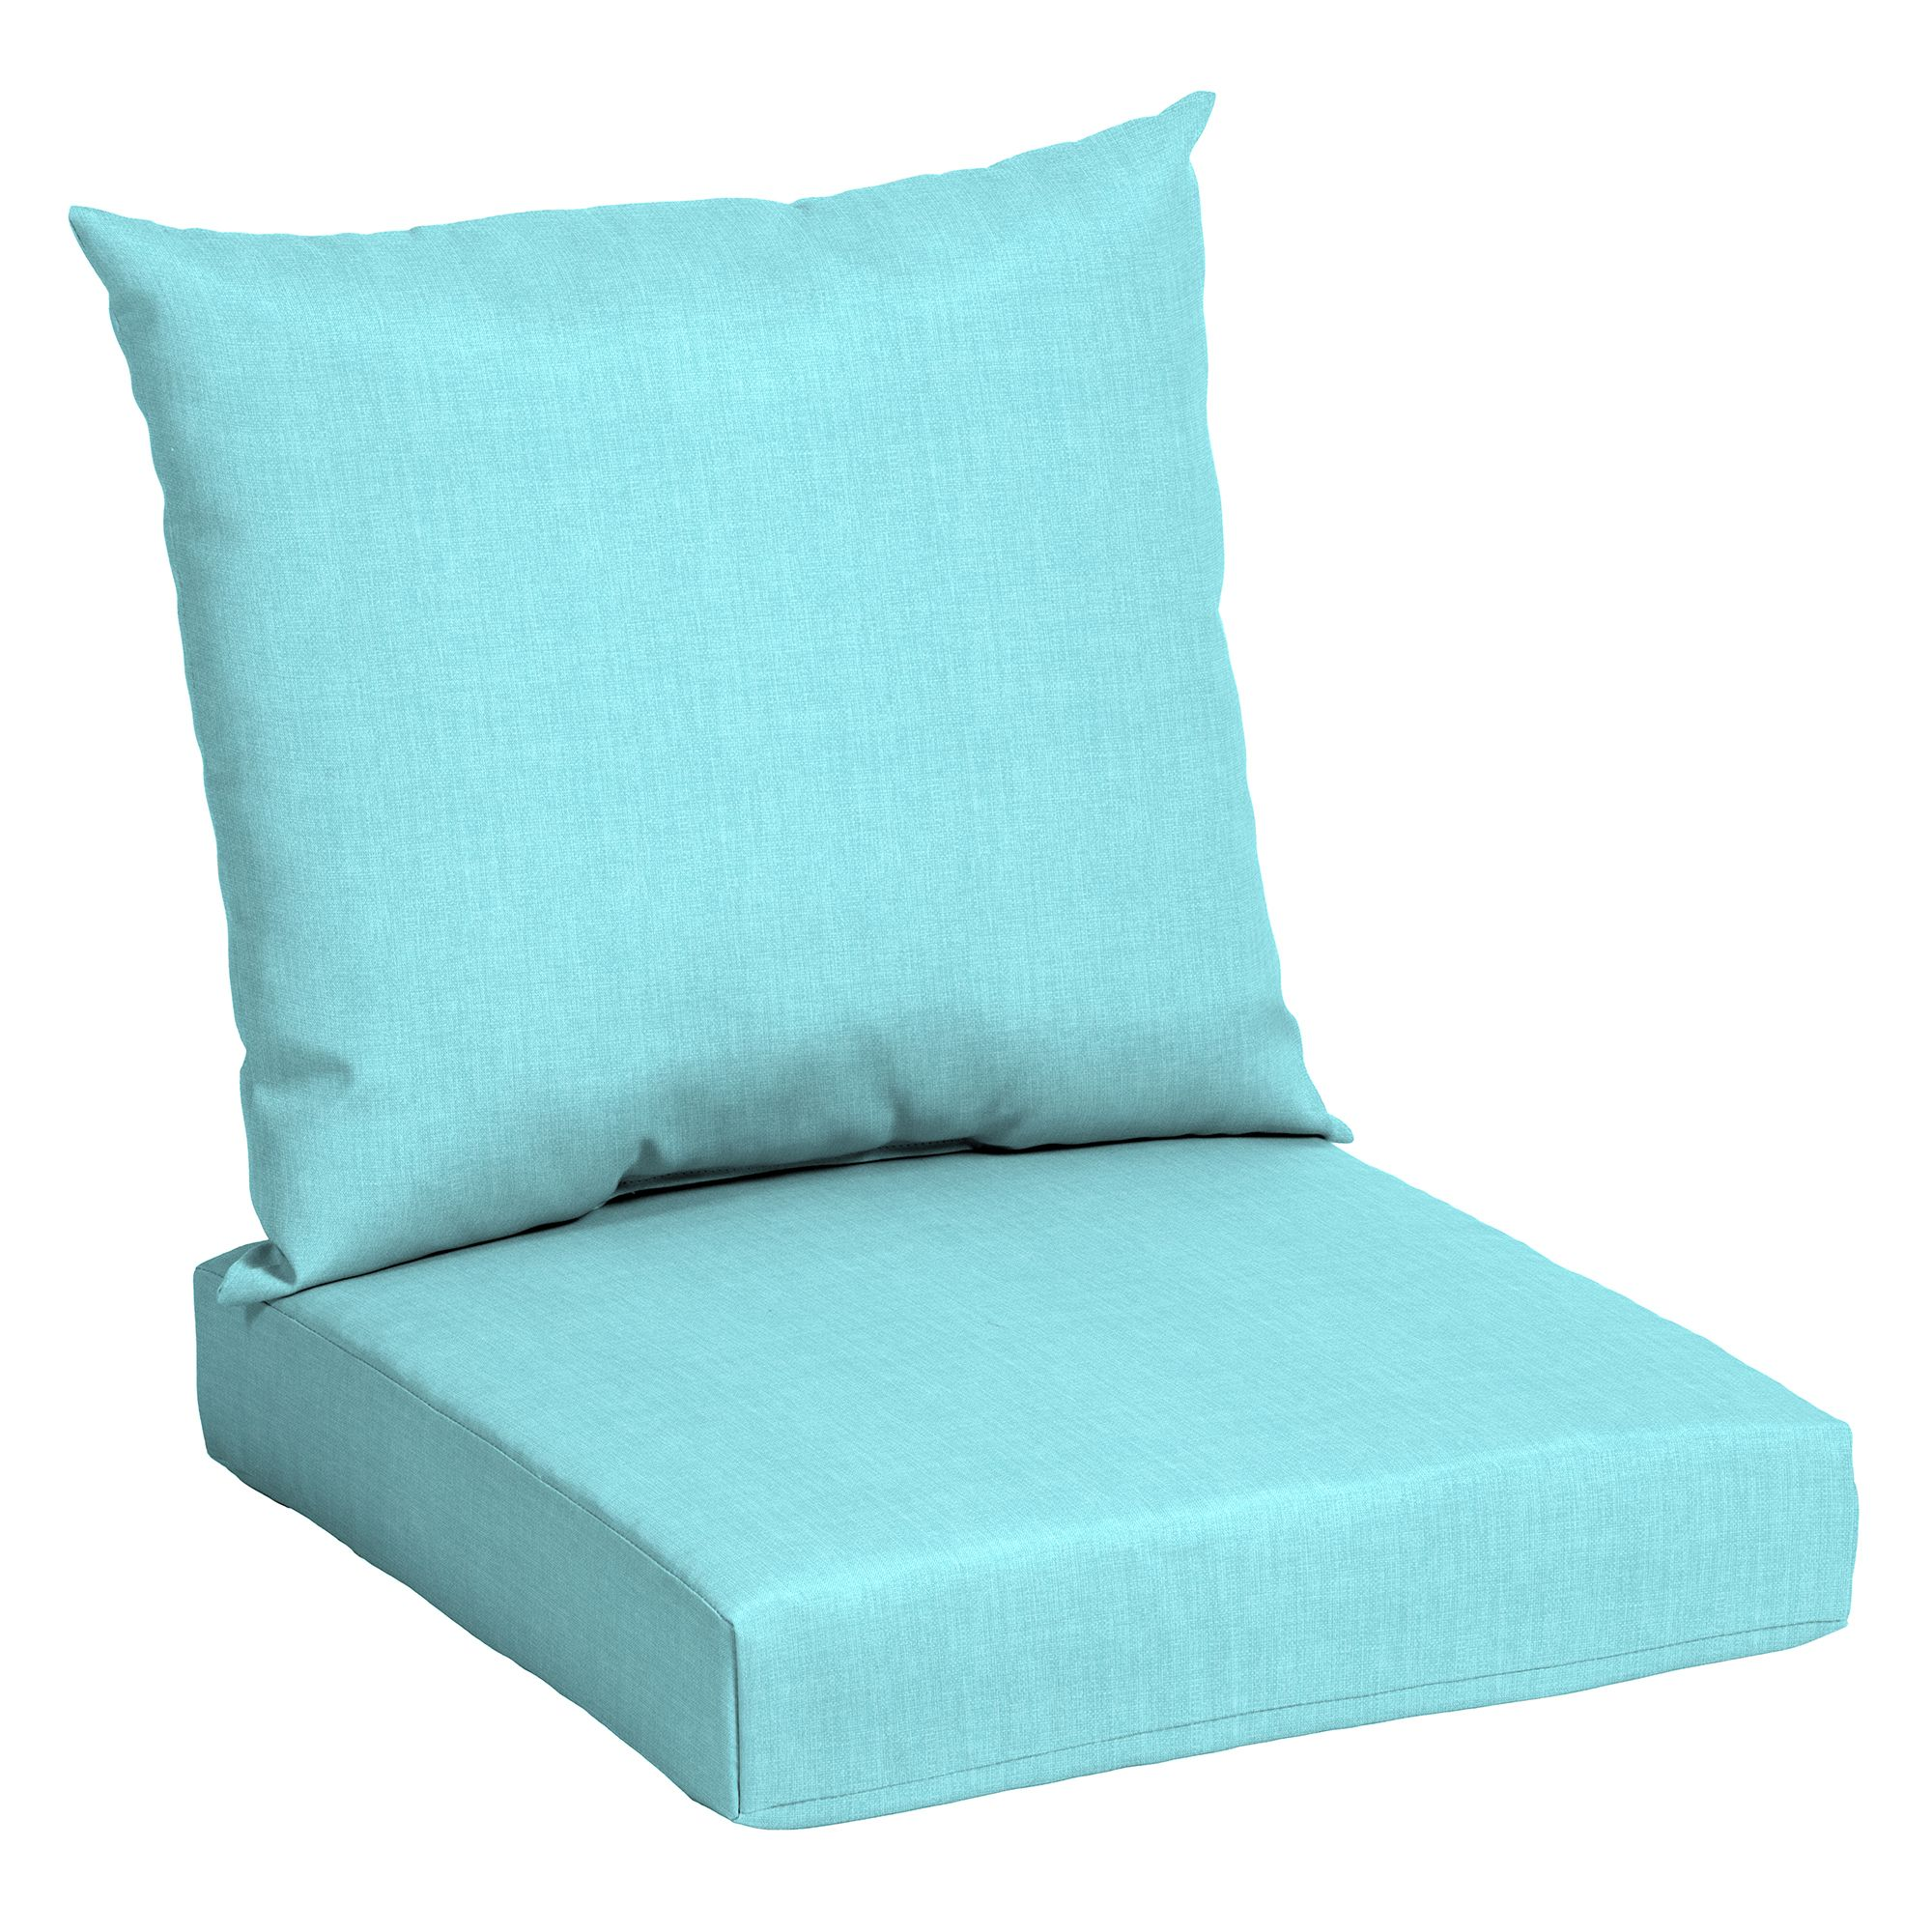 Mainstays Teal 45 X 22 75 In Outdoor Patio Deep Seat Cushion Set Walmart Com Walmart Co Deep Seat Cushions Outdoor Deep Seat Cushions Cheap Patio Cushions